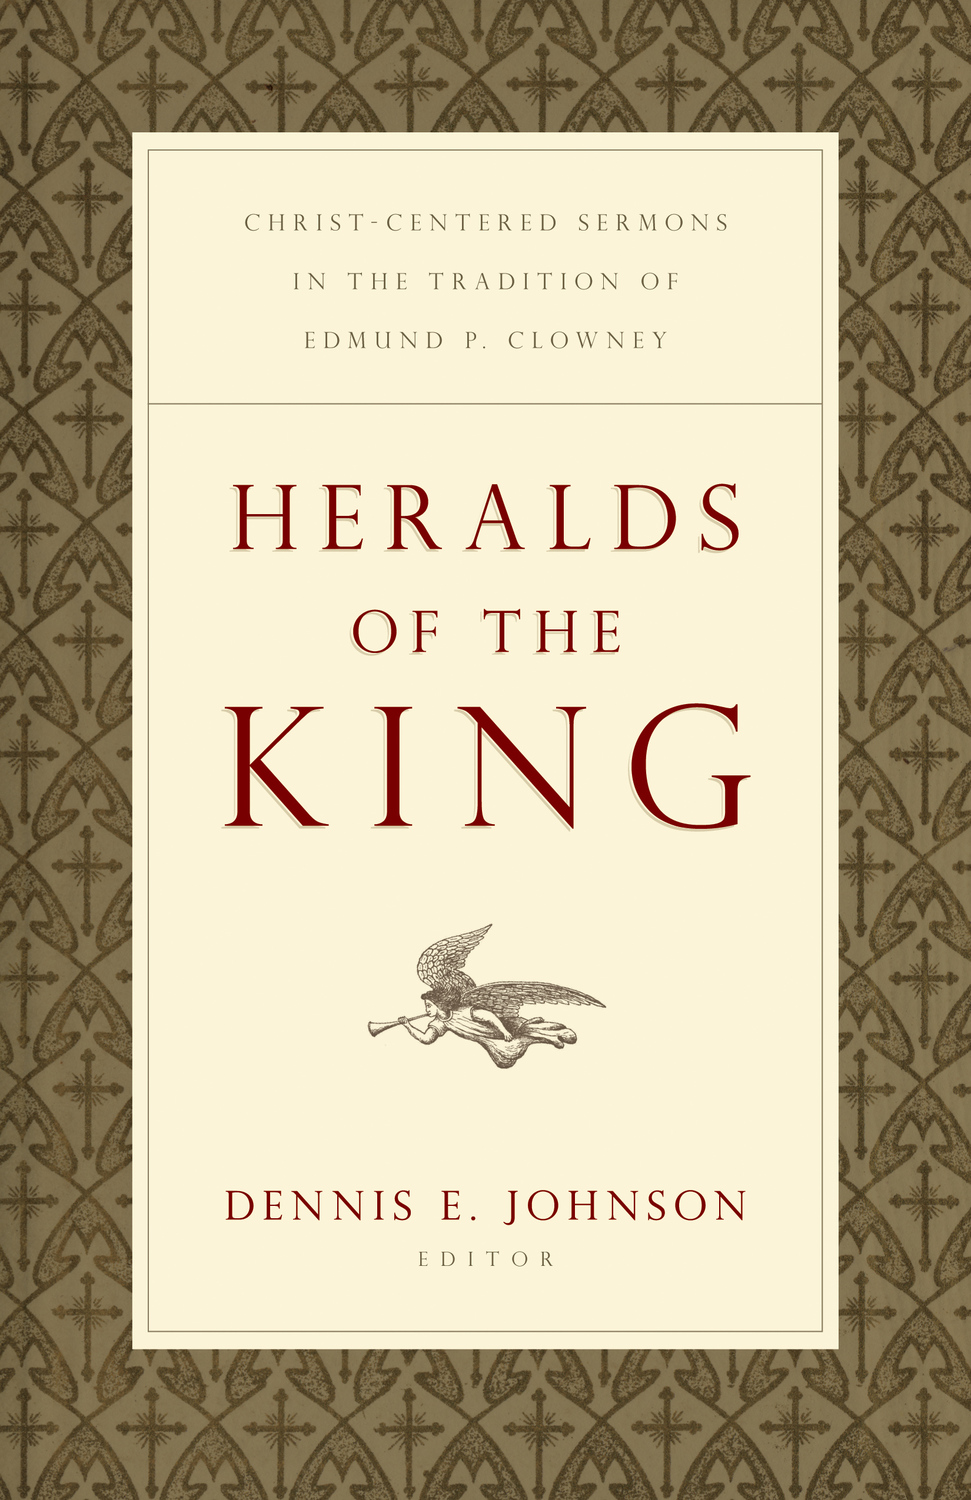 Heralds of the King